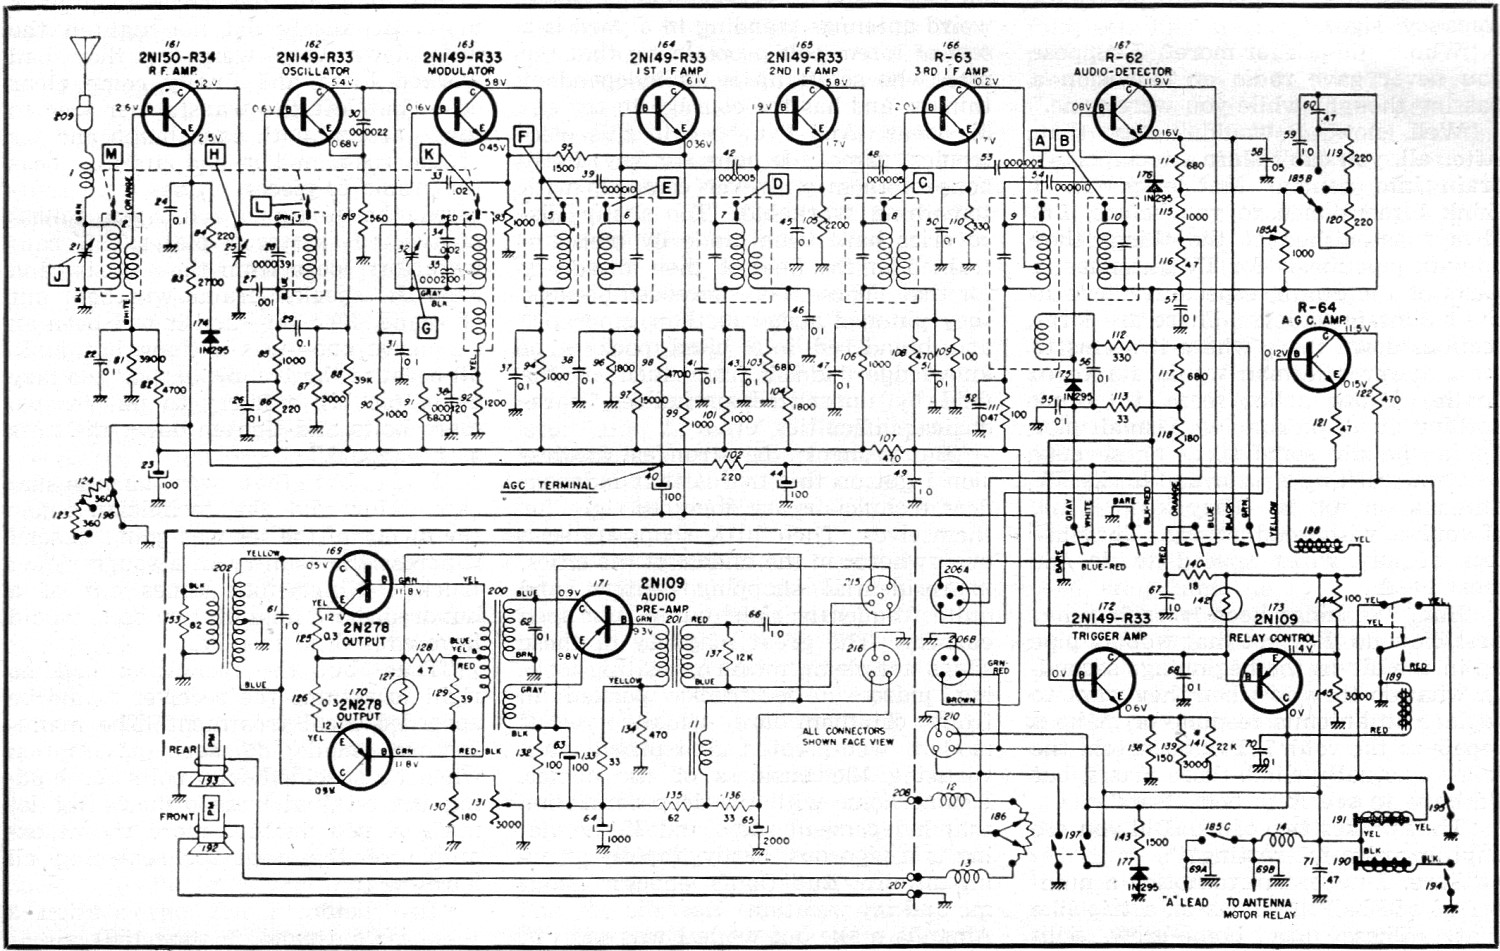 1958 Ford Fairlane Wiring Diagram likewise Wiring Diagrams For Willys Wagon besides Mercury Villager Motor Diagram as well Cadillac Vin Number Location besides Wiring Diagram 1959 Chrysler Windsor. on 1957 cadillac wiring diagram